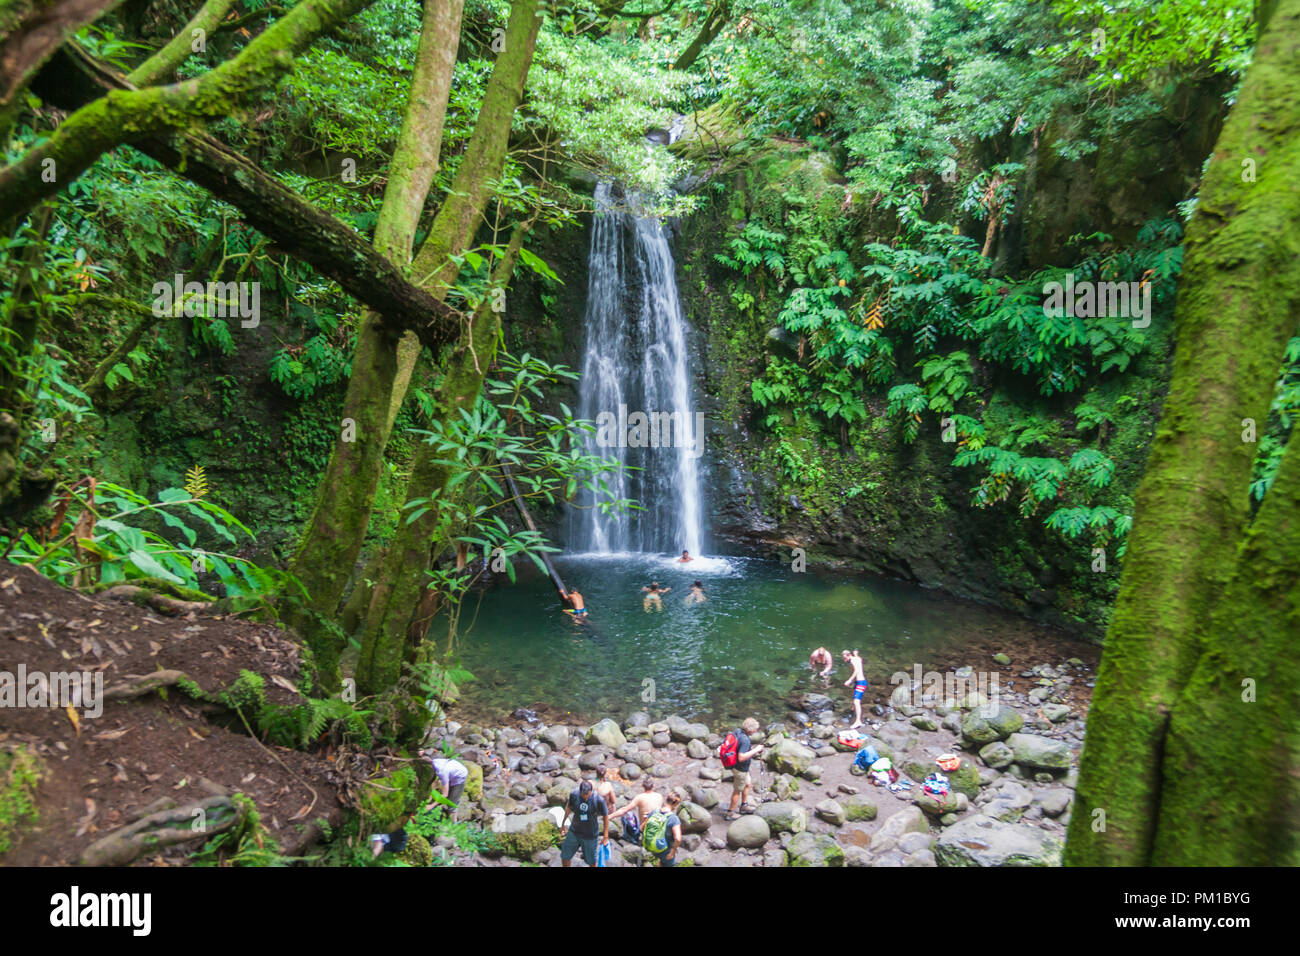 Located in Faial da Terra and accessible either by the pedestrian path of Sanguinho or by the Salto do Prego waterfall sao miguel azores - Stock Image